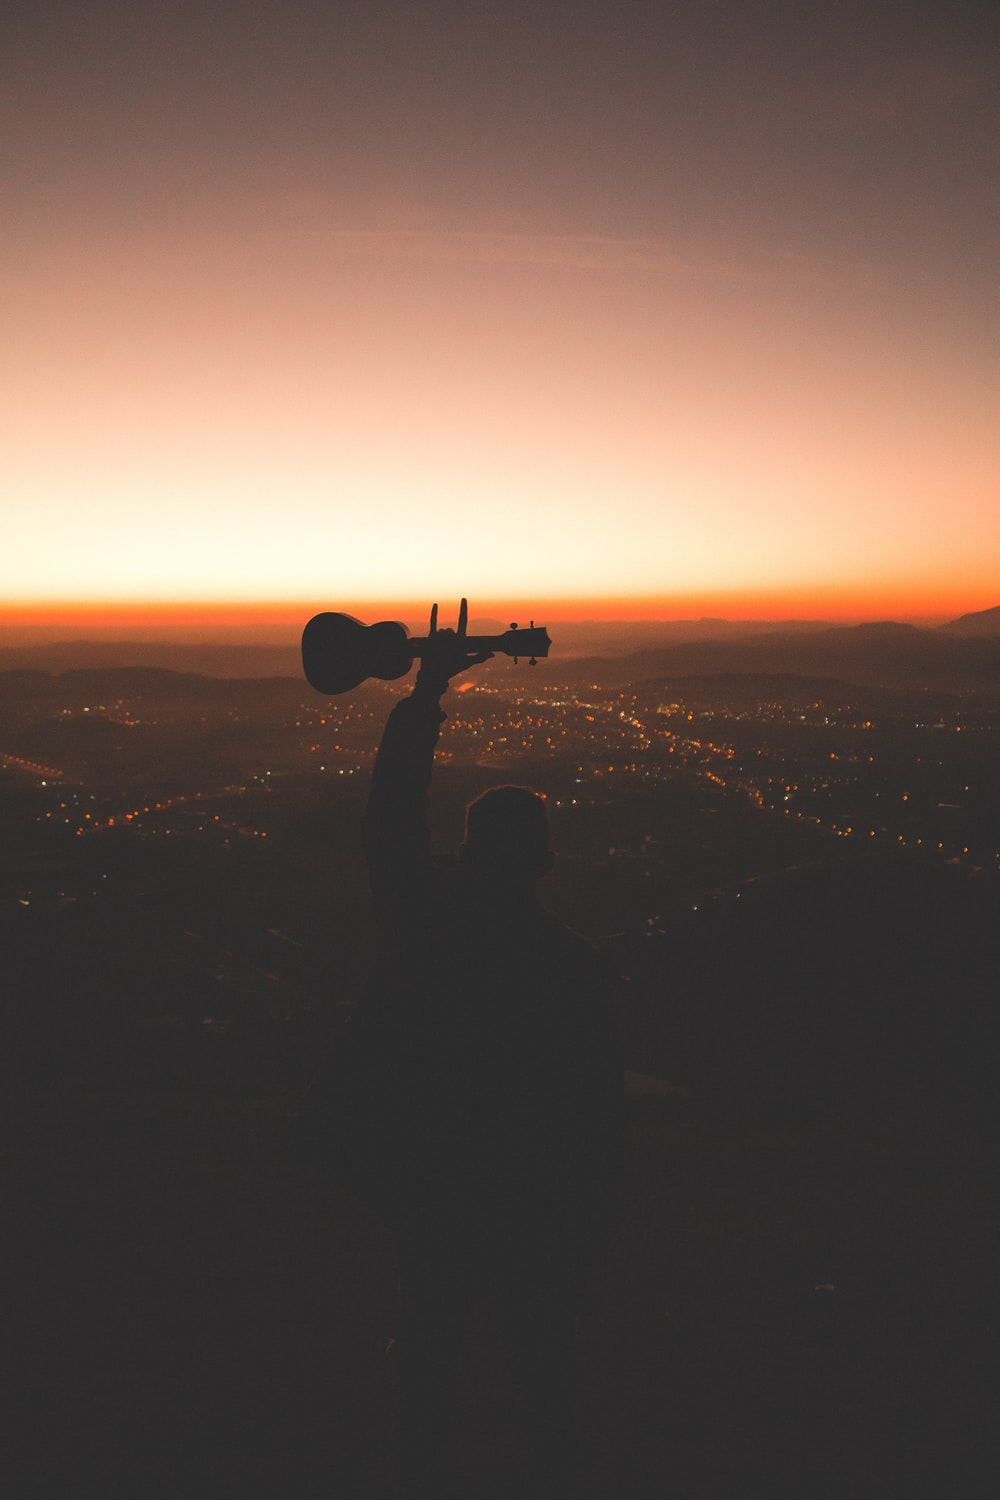 silhouette photography of person holding guitar